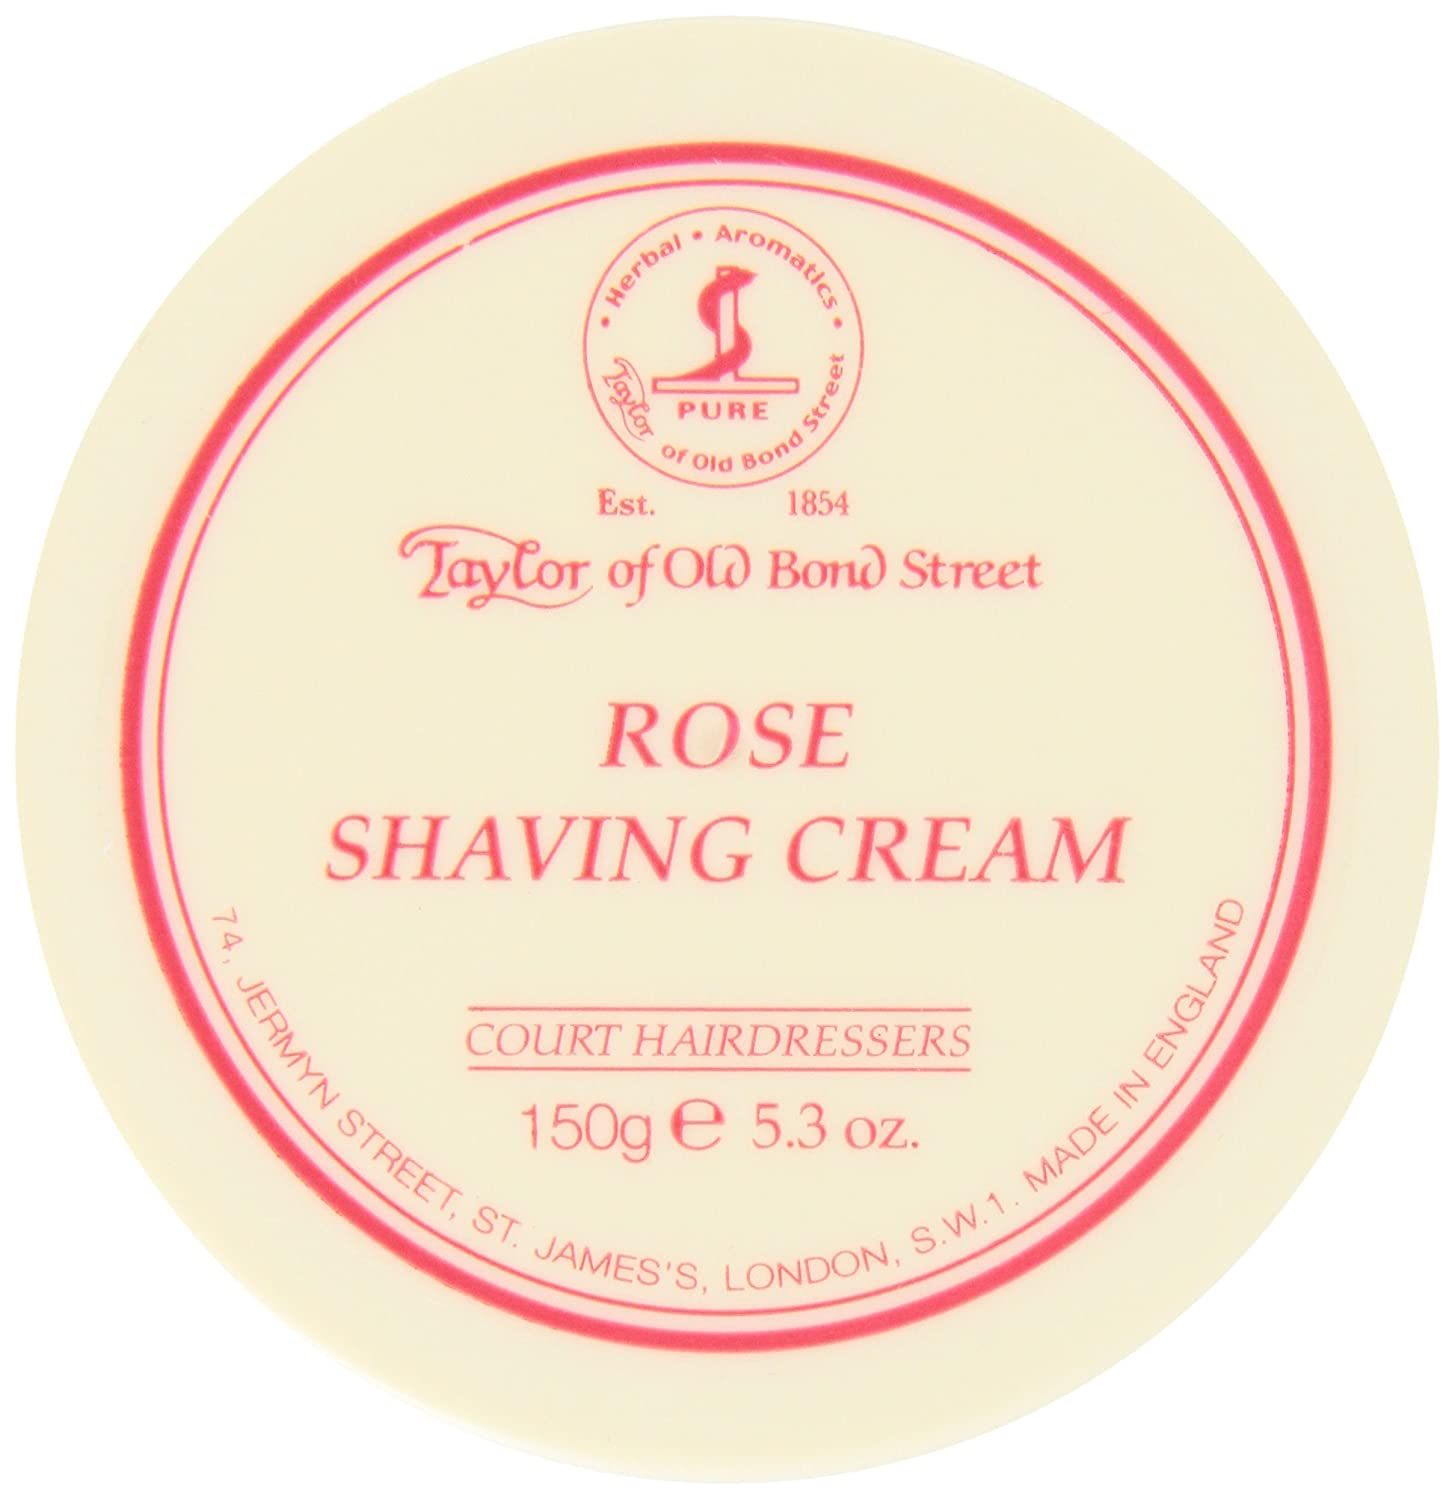 Taylor of Old Bond Street Rose Shaving Cream Bowl, 150 Gram Spicy World of USA Inc 01004